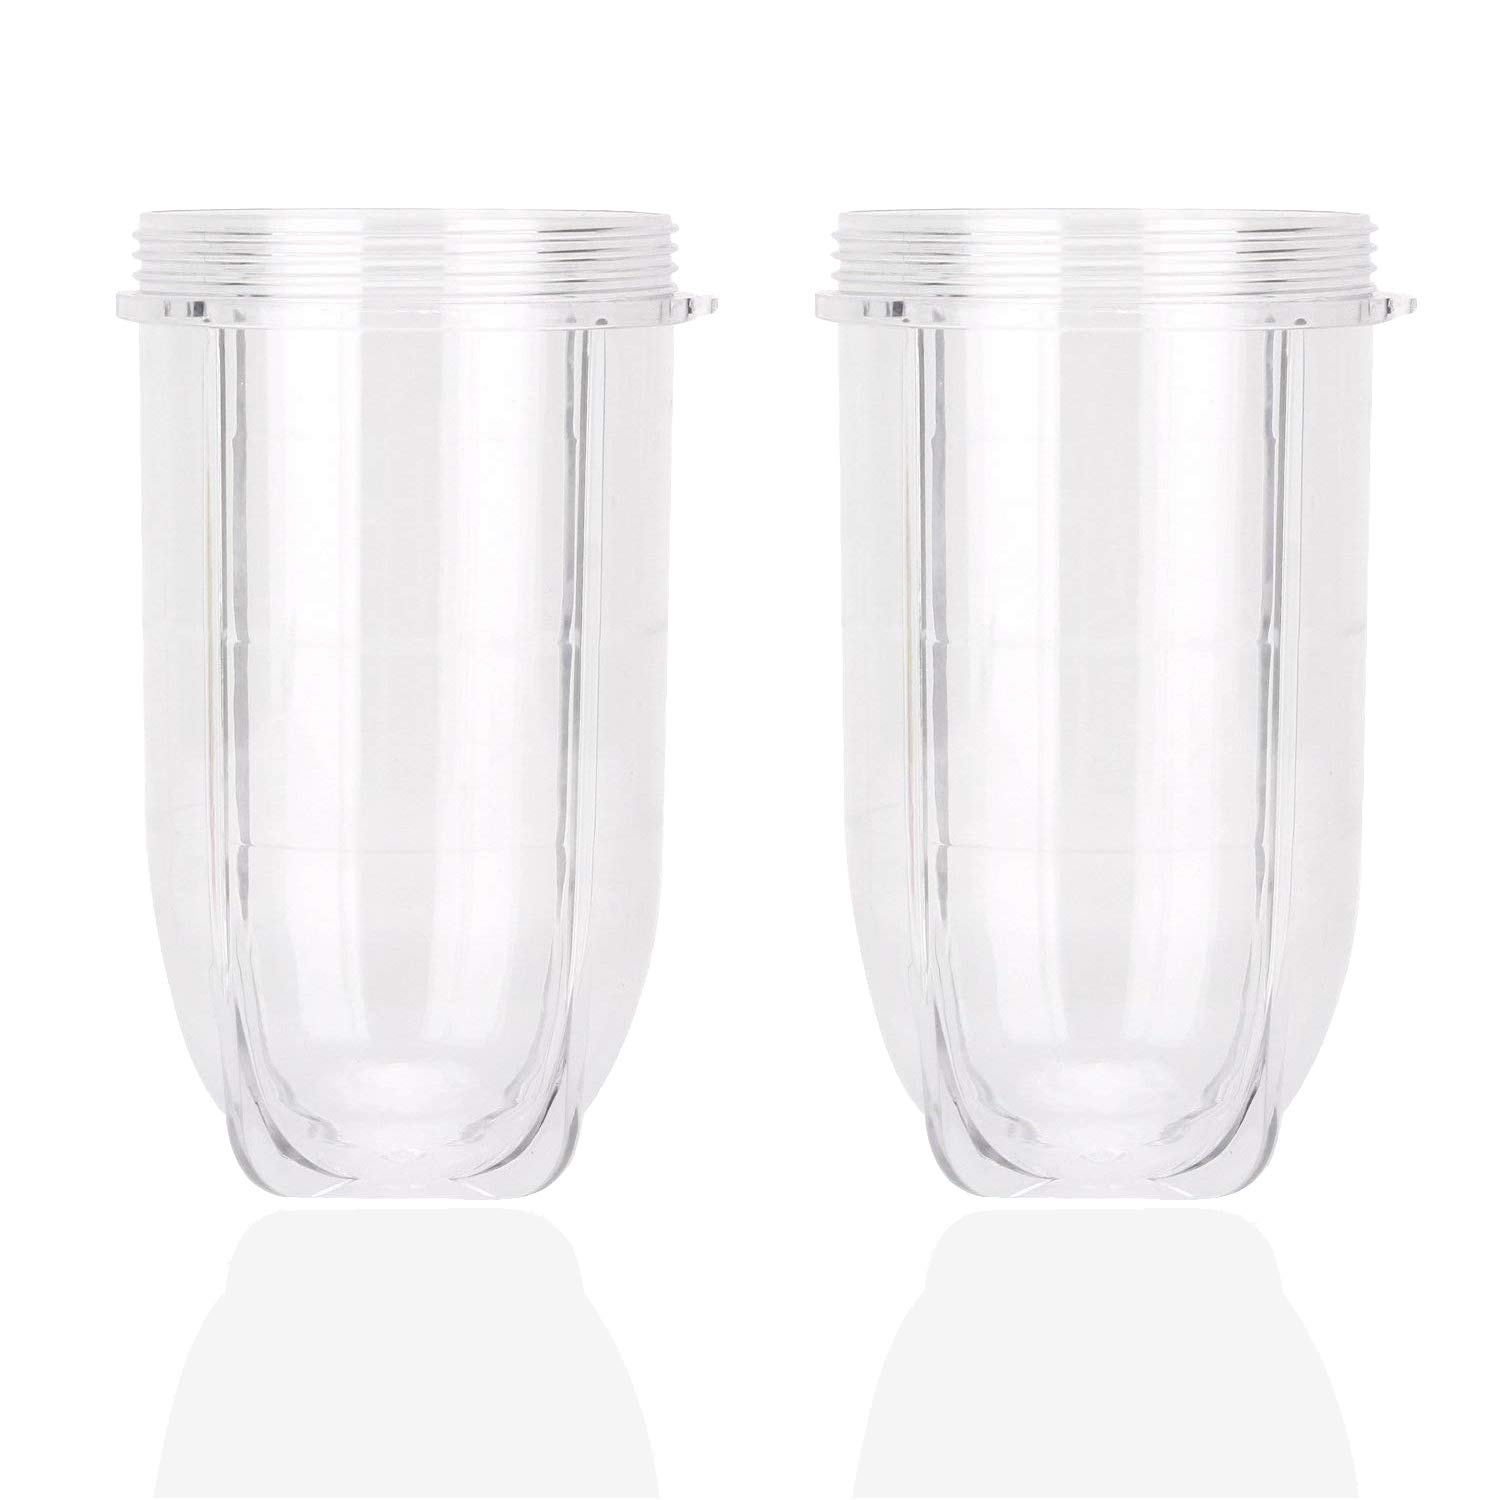 16OZ Cups Compatible with 250W Magic Bullet Blender Mixer Juicer, Clear Plastic Tall Blending Large Replacement Parts by Wadoy - 2 x Tall Cup